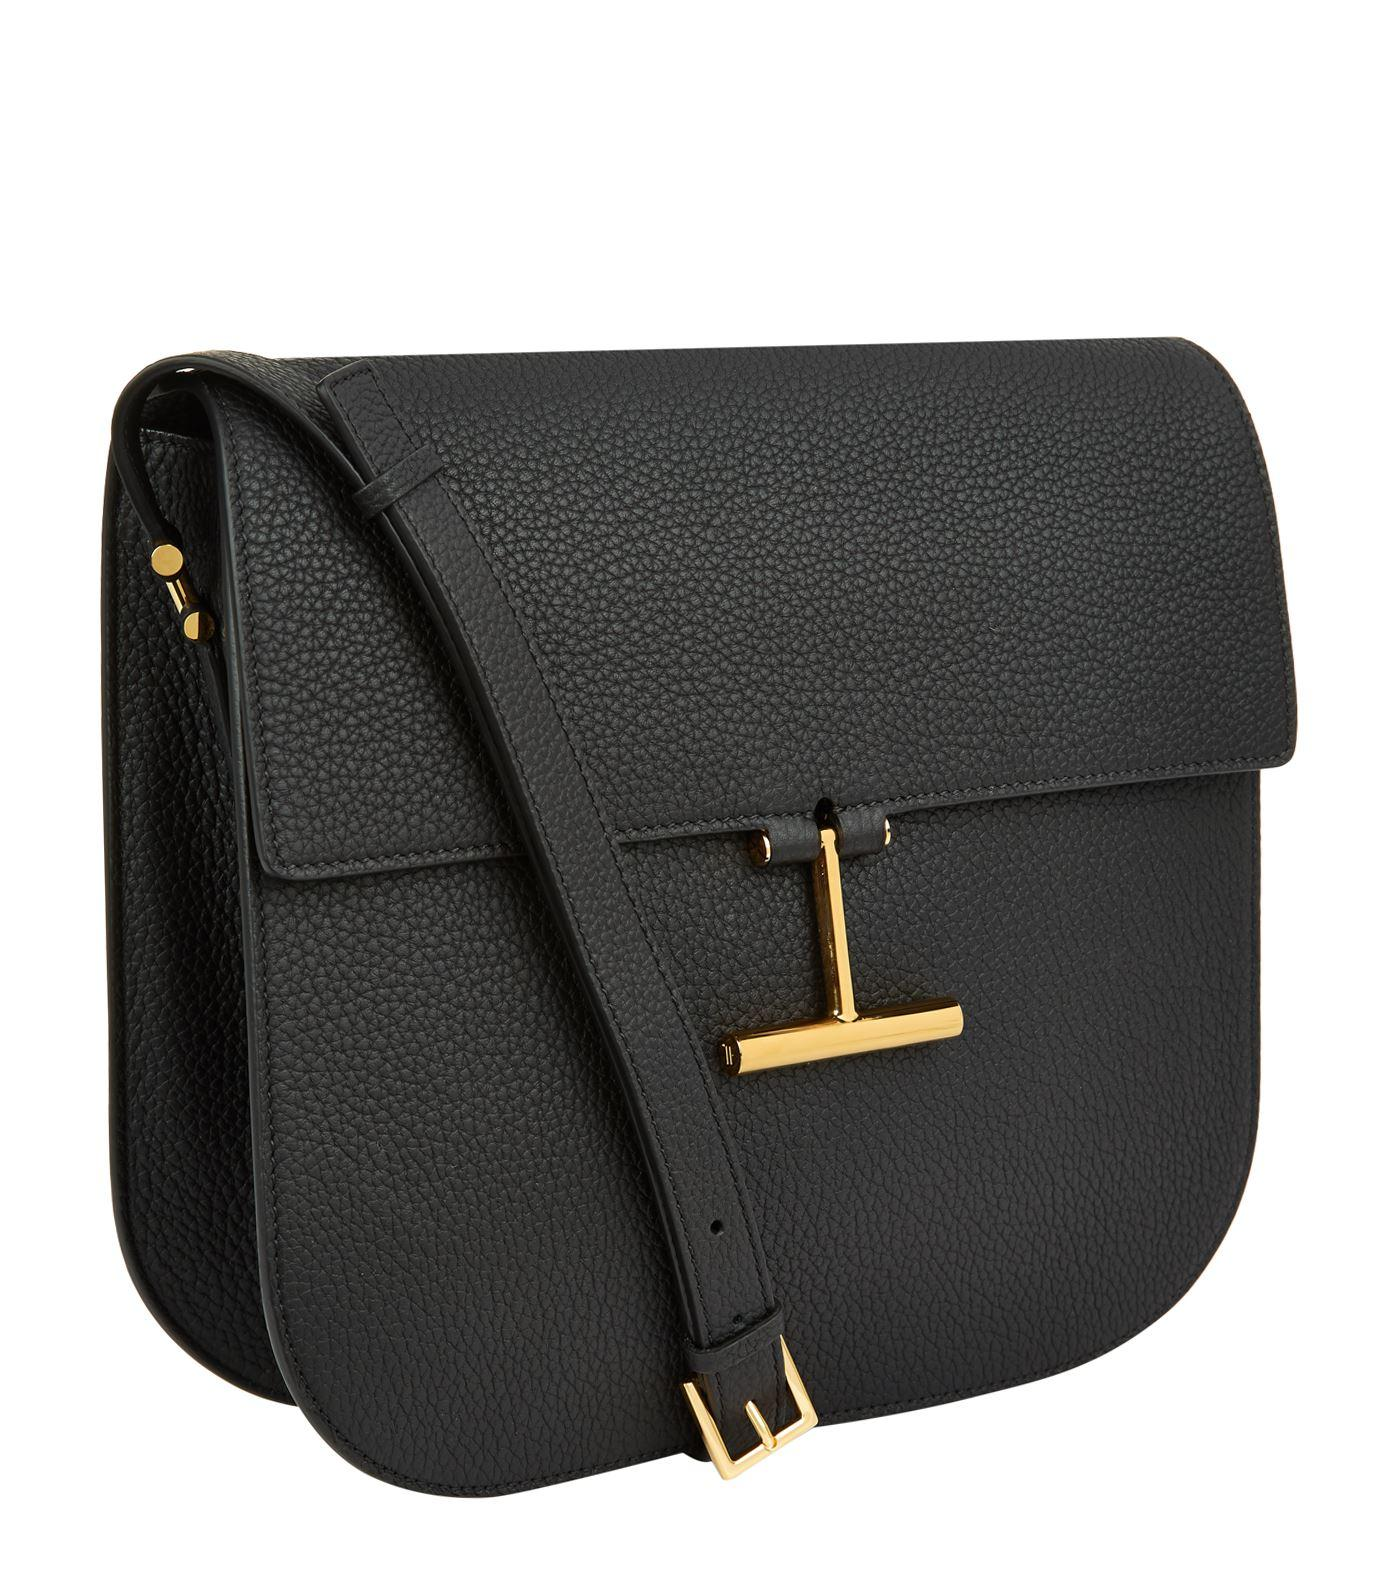 Tom Ford Leather T-clasp Crossbody Bag in Black